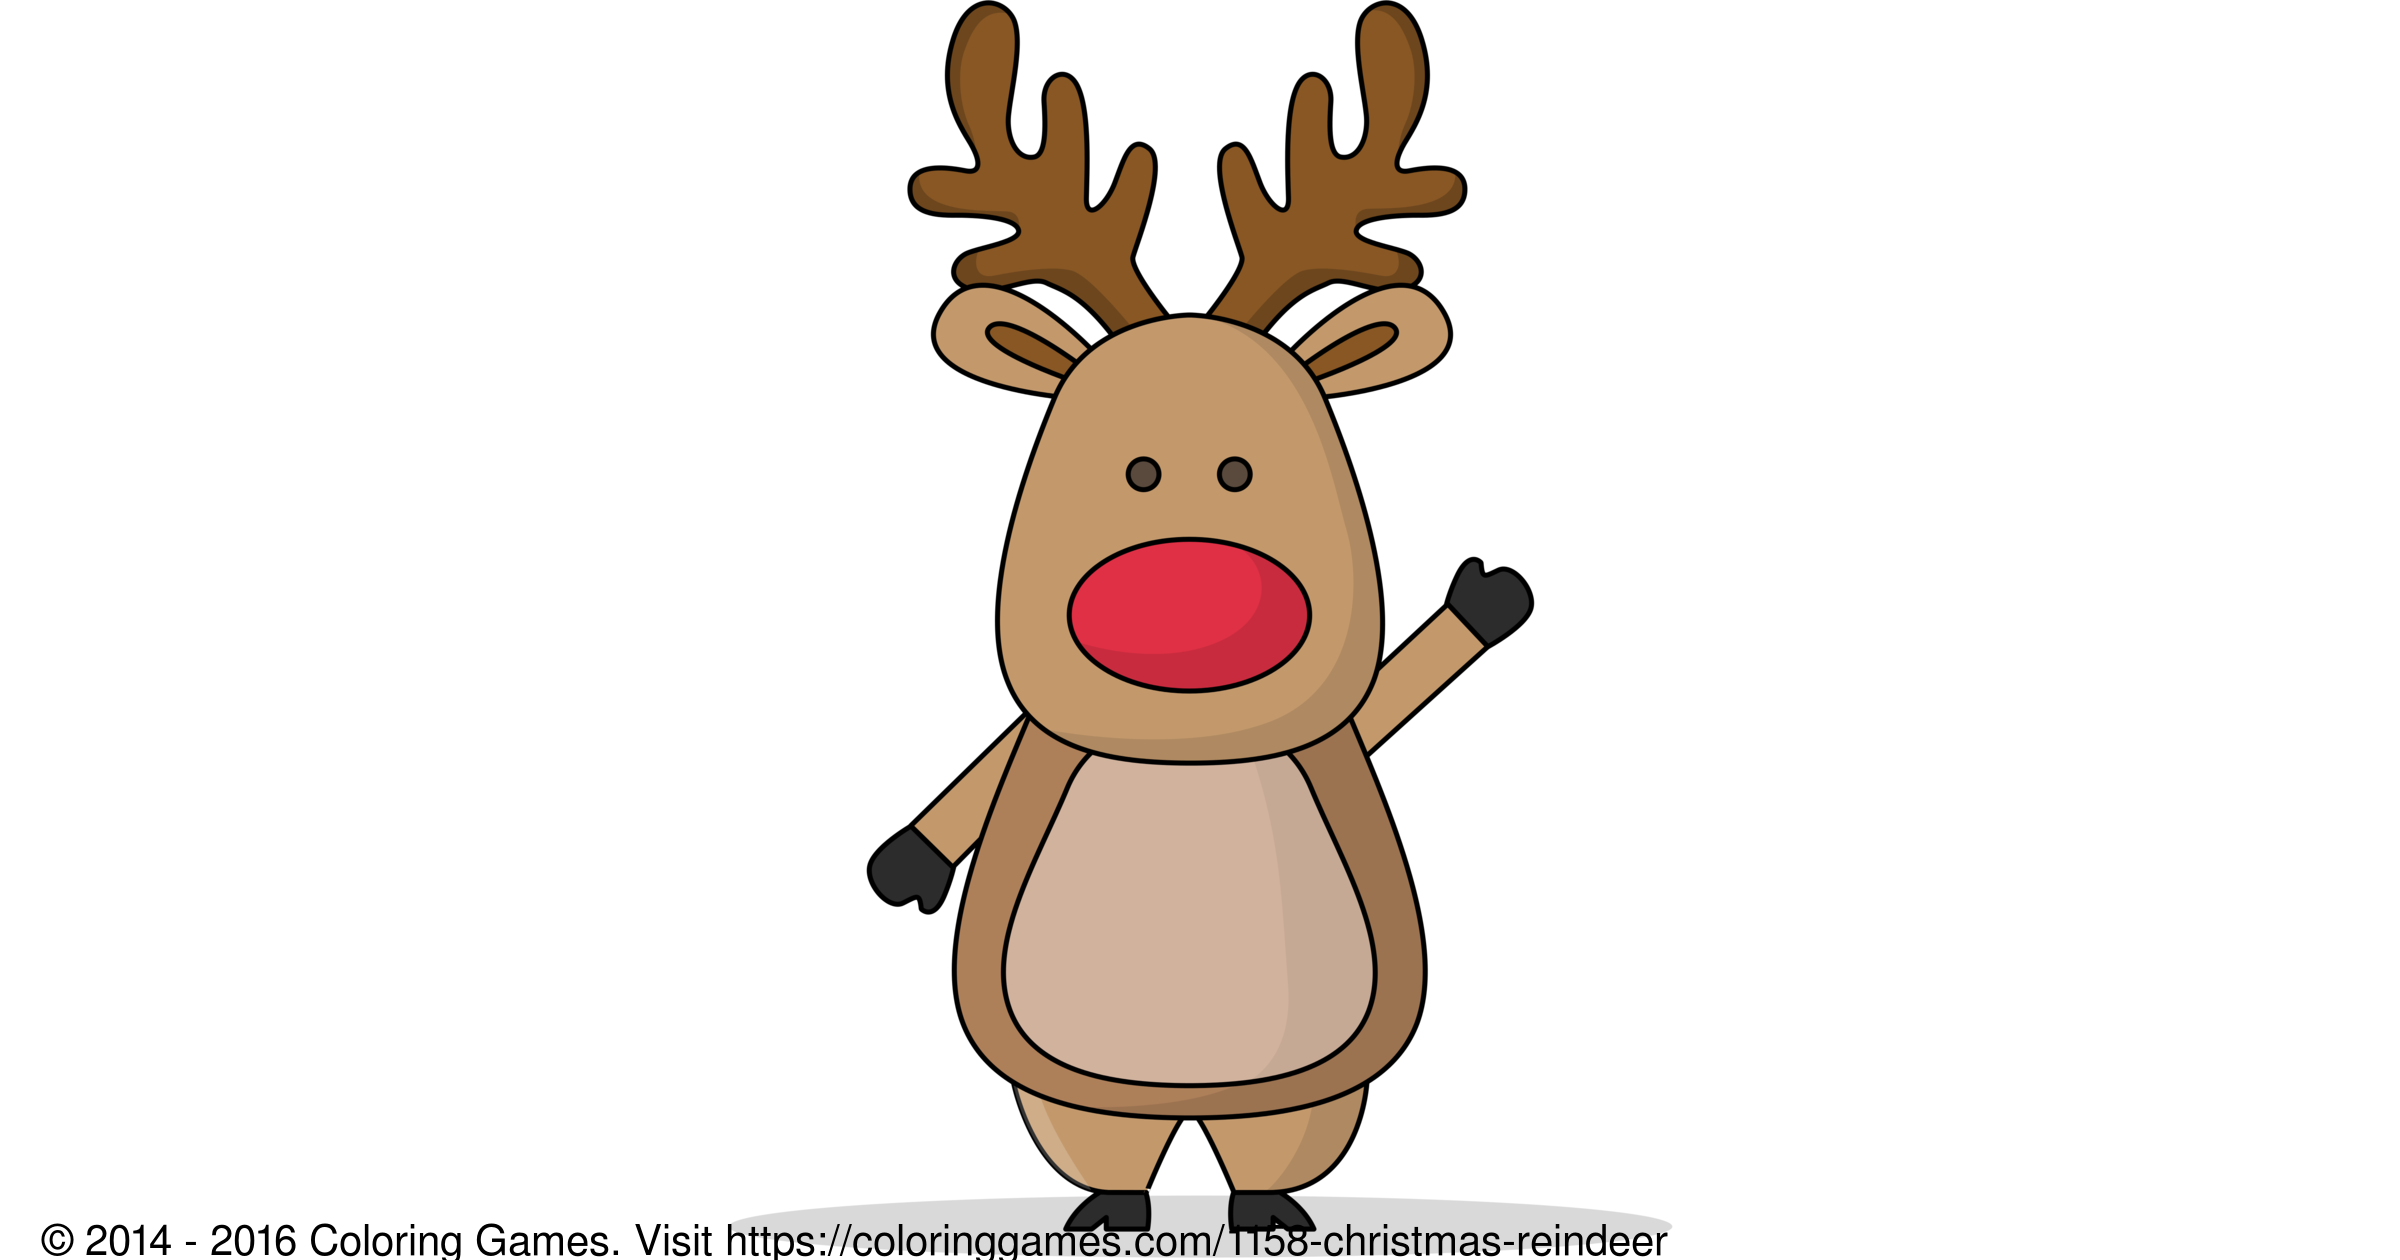 Christmas Reindeer - Coloring Games and Coloring Pages